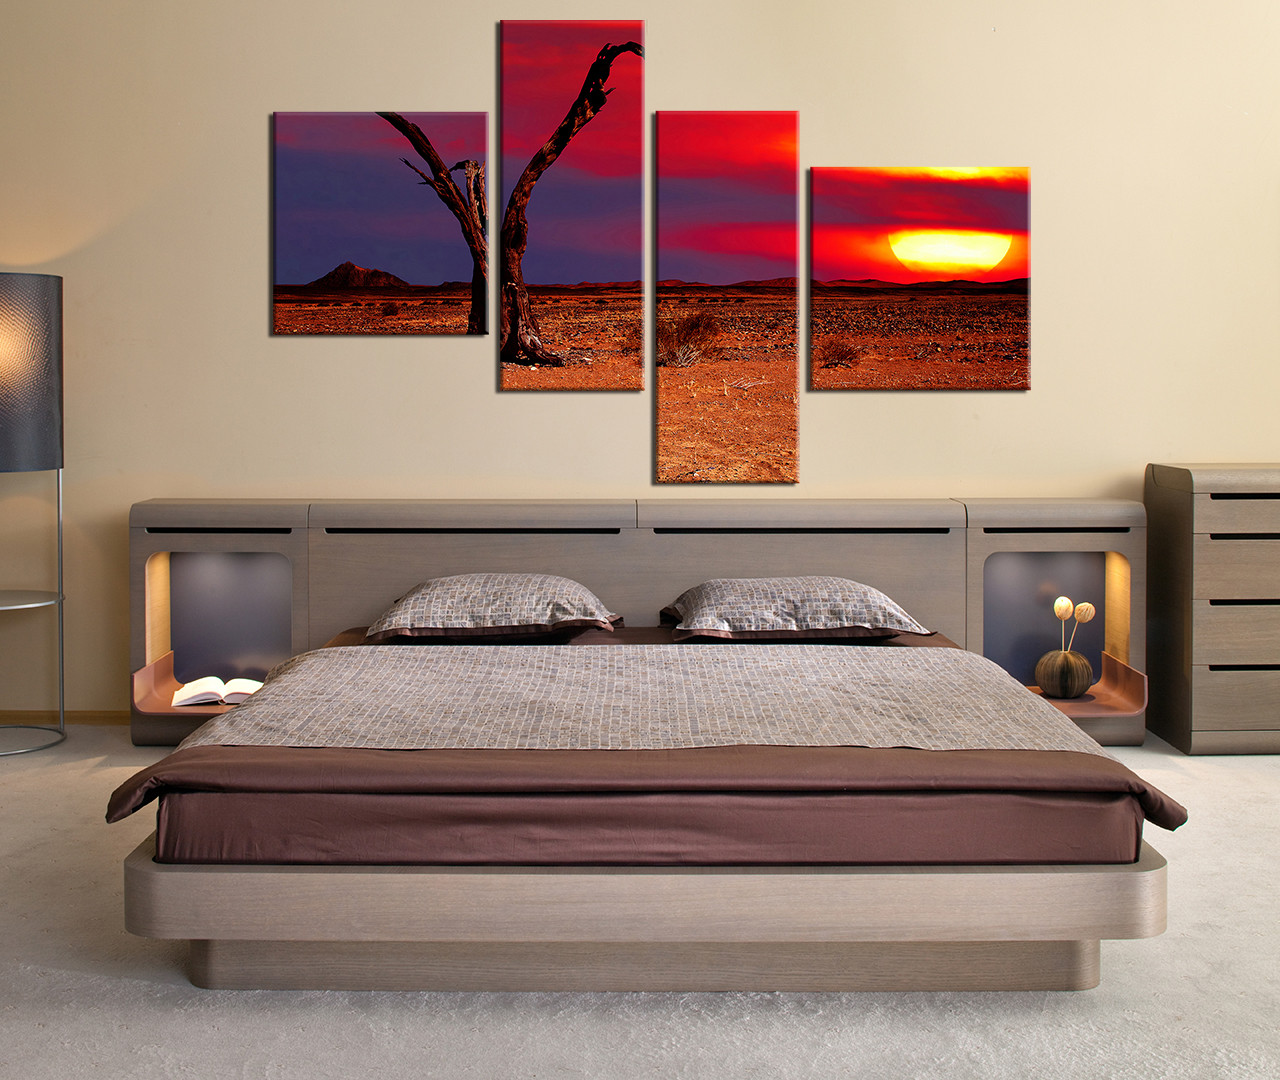 4 Piece Wall Decor Orange Nature Photo Canvas Bedroom Large Pictures Scenery Multi